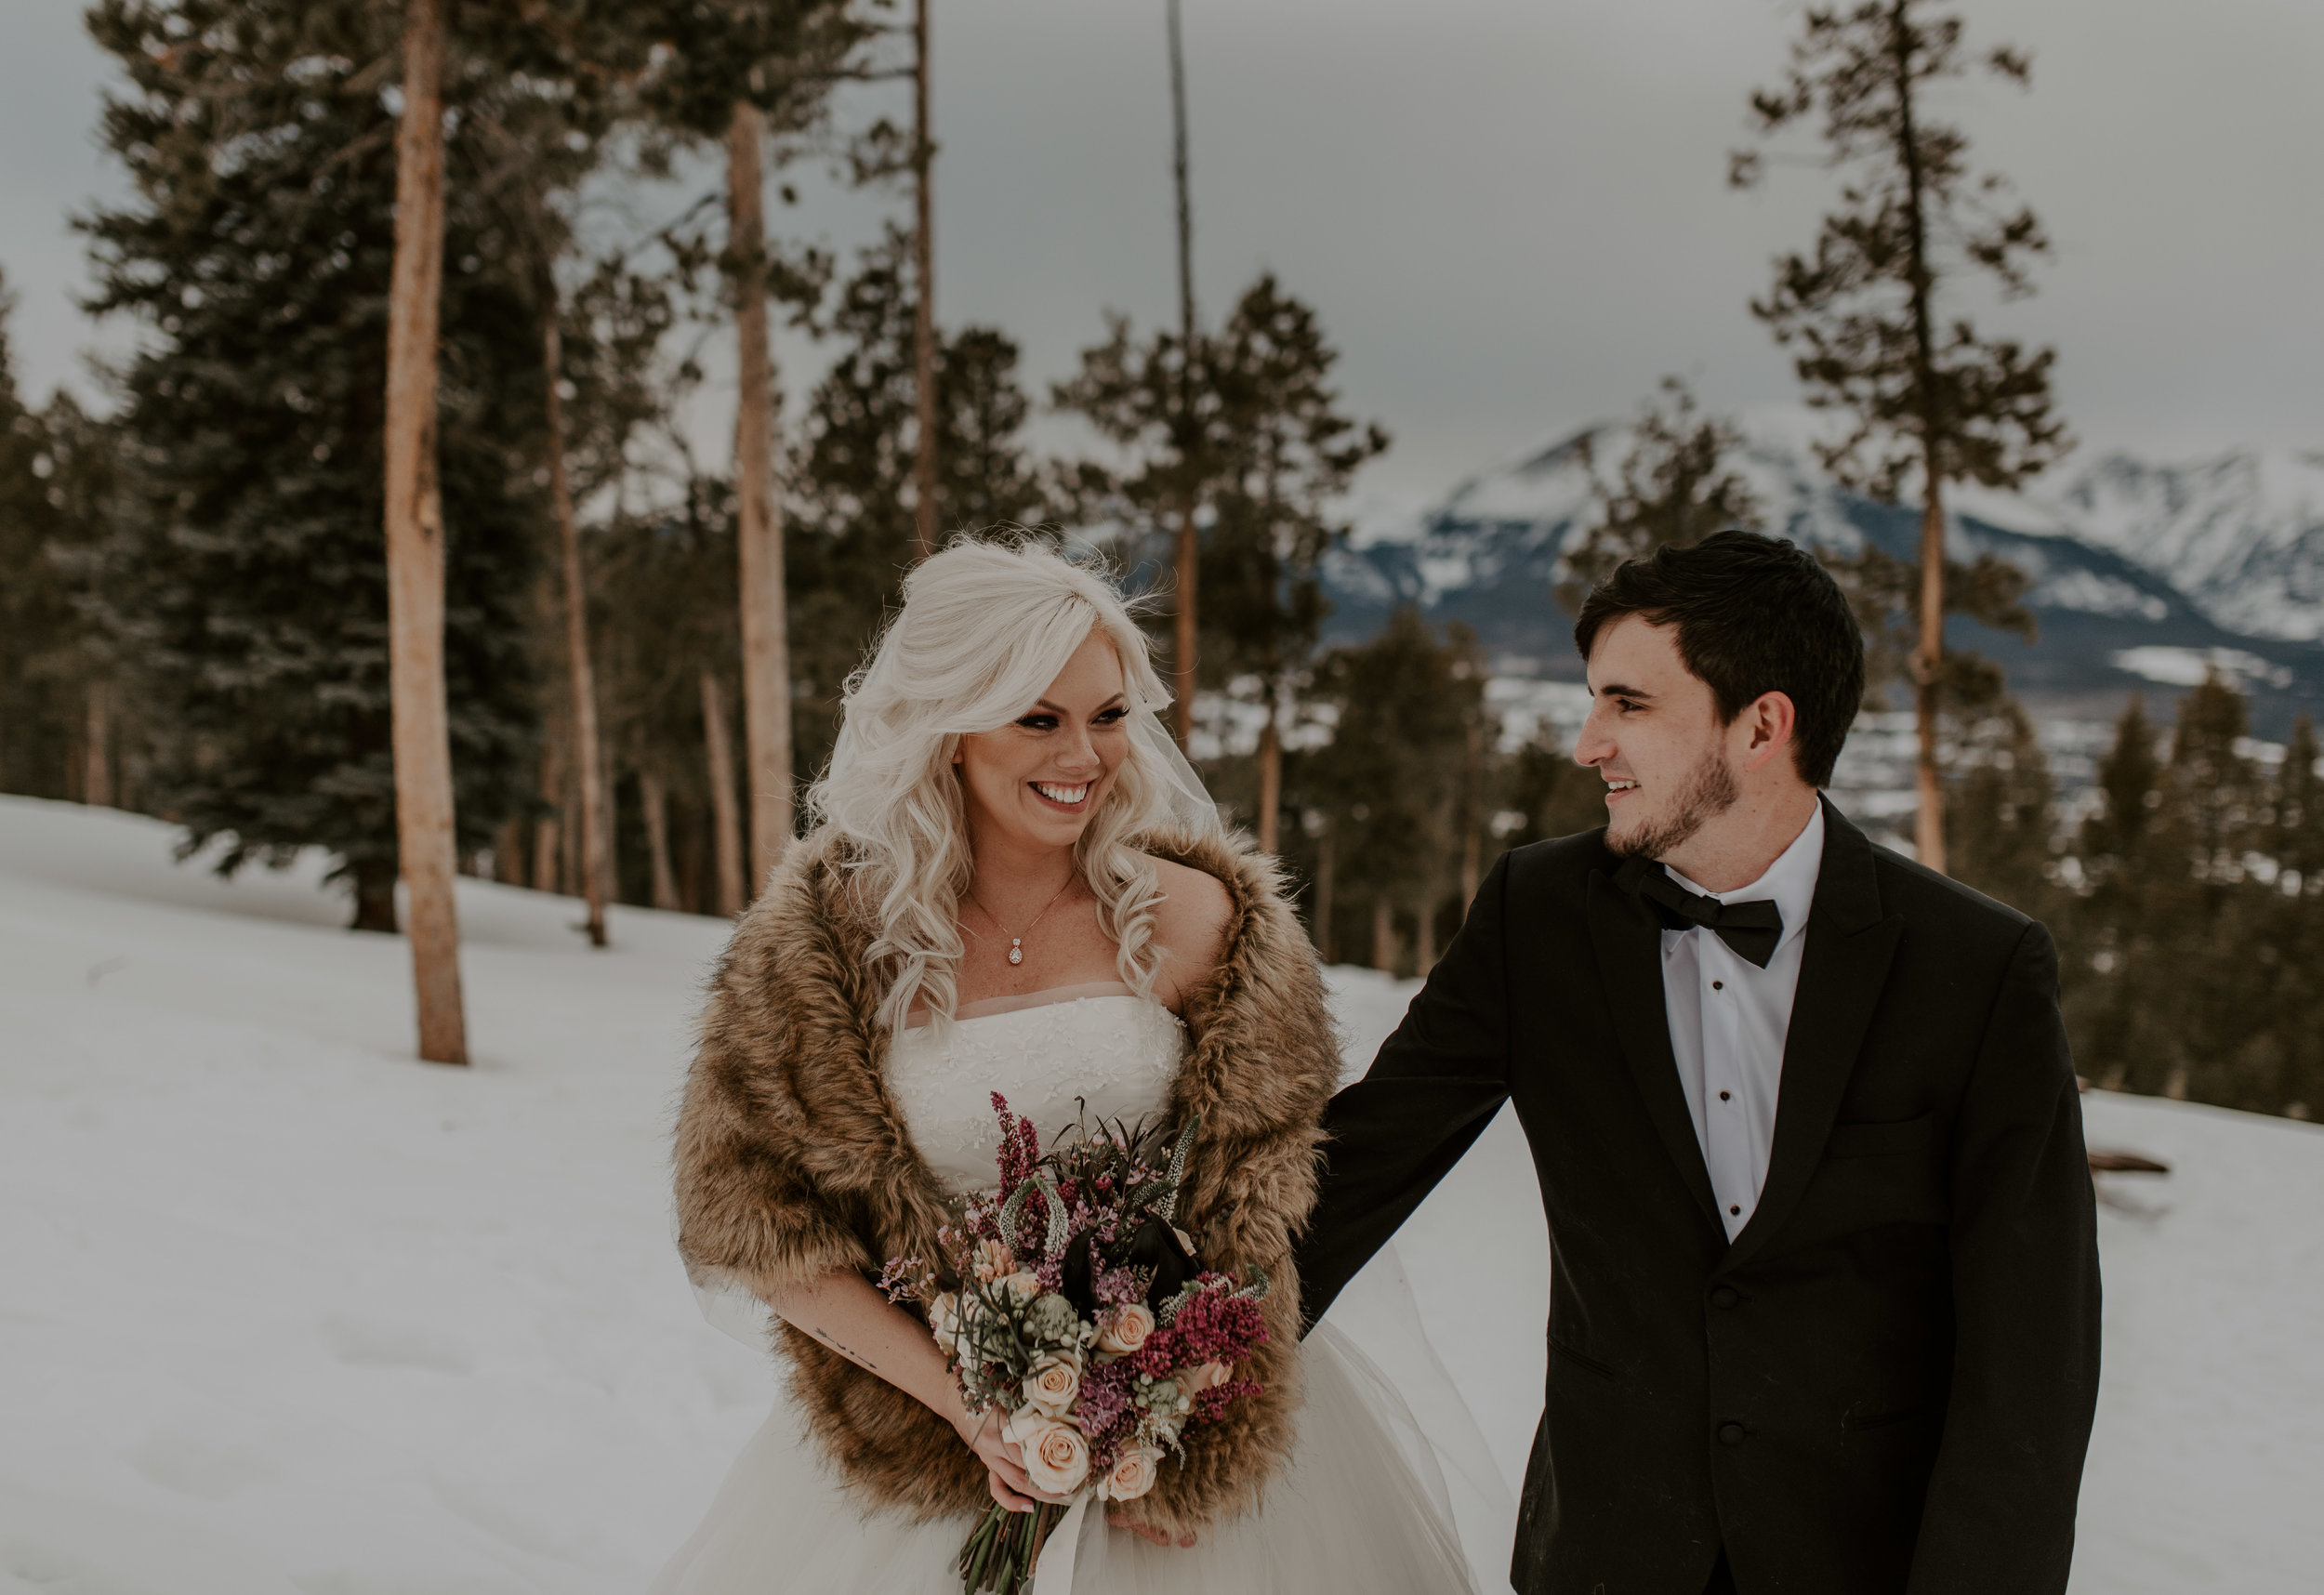 Mountain wedding at Sapphire Point in Dillon, Colorado. Denver elopement and wedding photography.